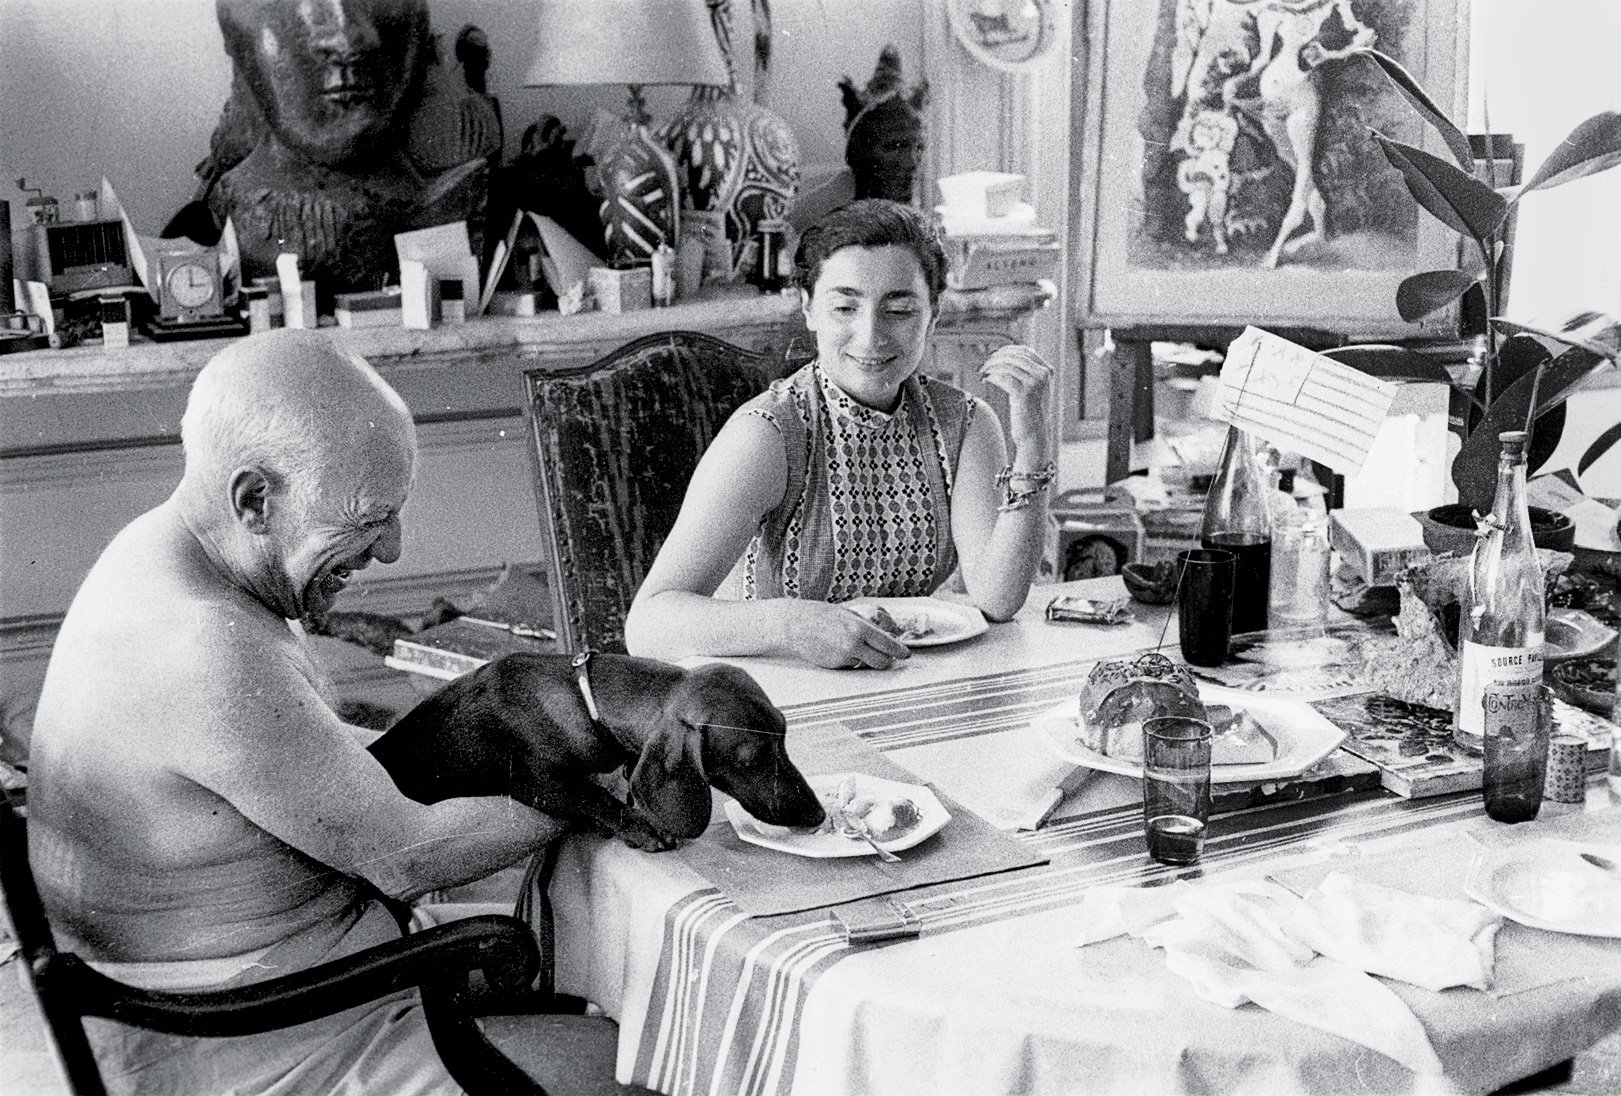 Picasso and Jacqueline (his second wife) sharing lunch with Lump. Photograph: David Douglas Duncan, 1957. http://www.nytimes.com/interactive/2013/06/02/t-magazine/02lookout-picasso.html